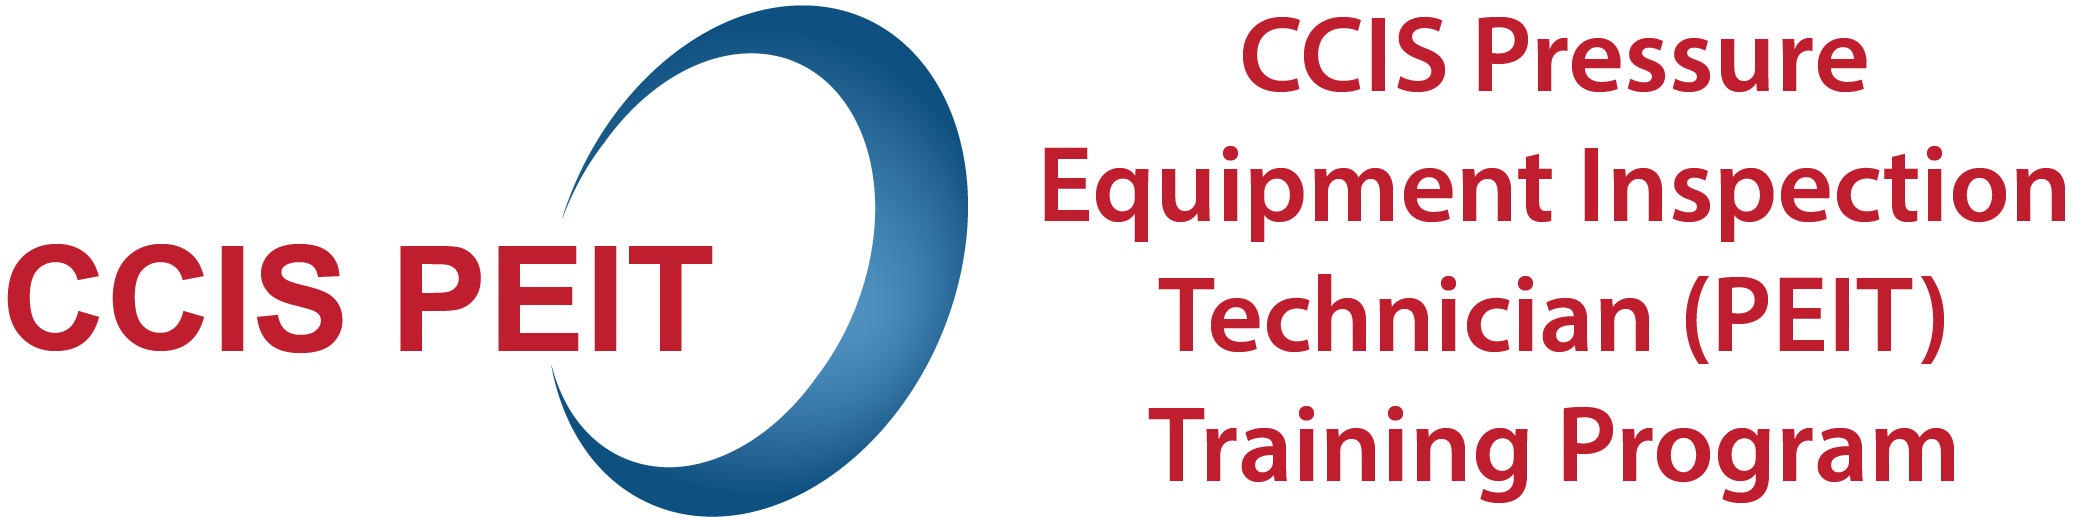 CCIS PRESSURE EQUIPMENT INSPECTION TECHNICIAN (PEIT) TRAINING PROGRAM ANNOUNCEMENT